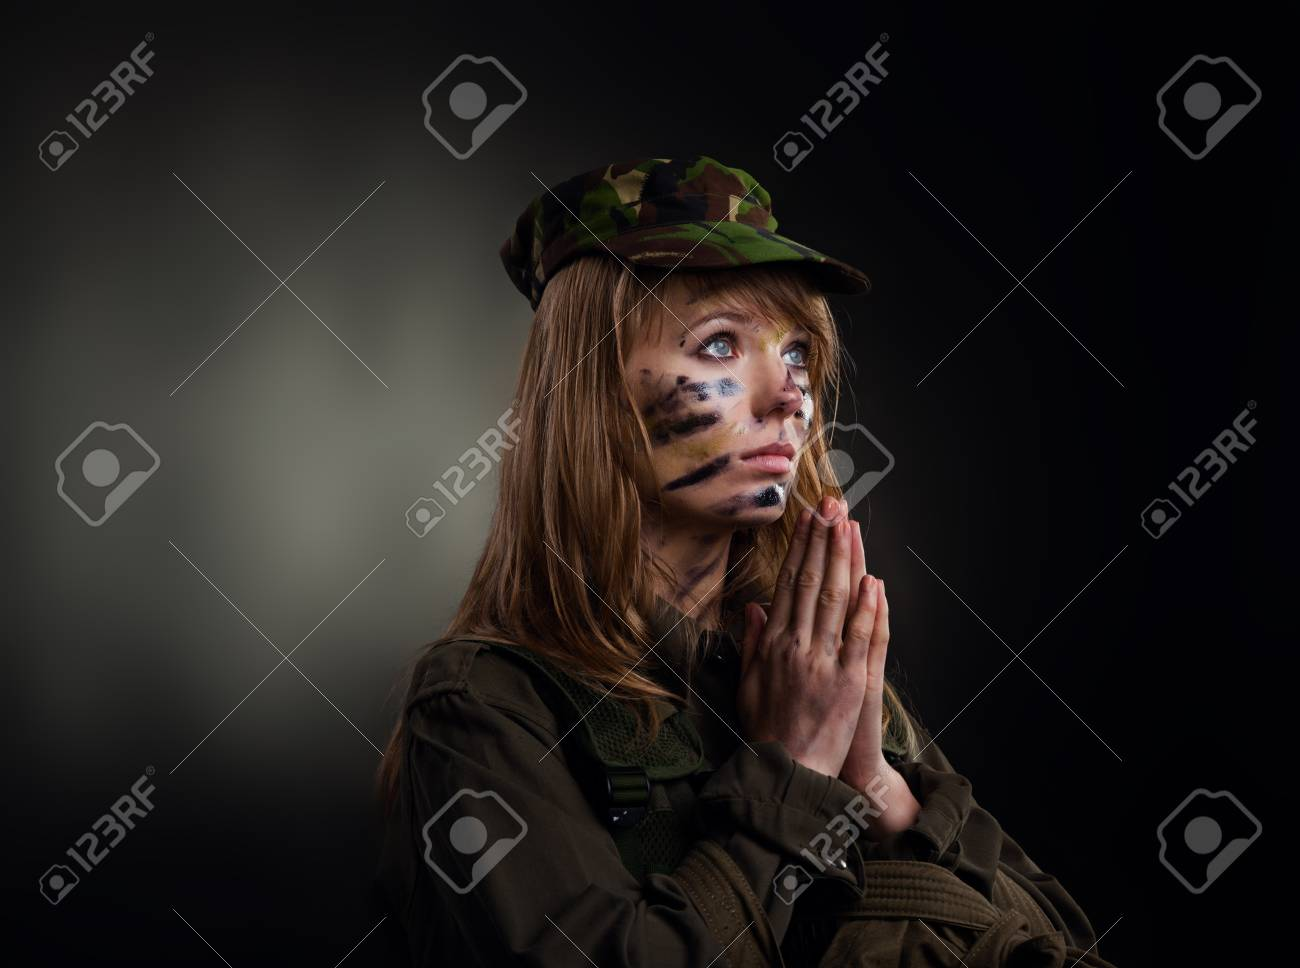 millitary girl Stock Photo - 18810319